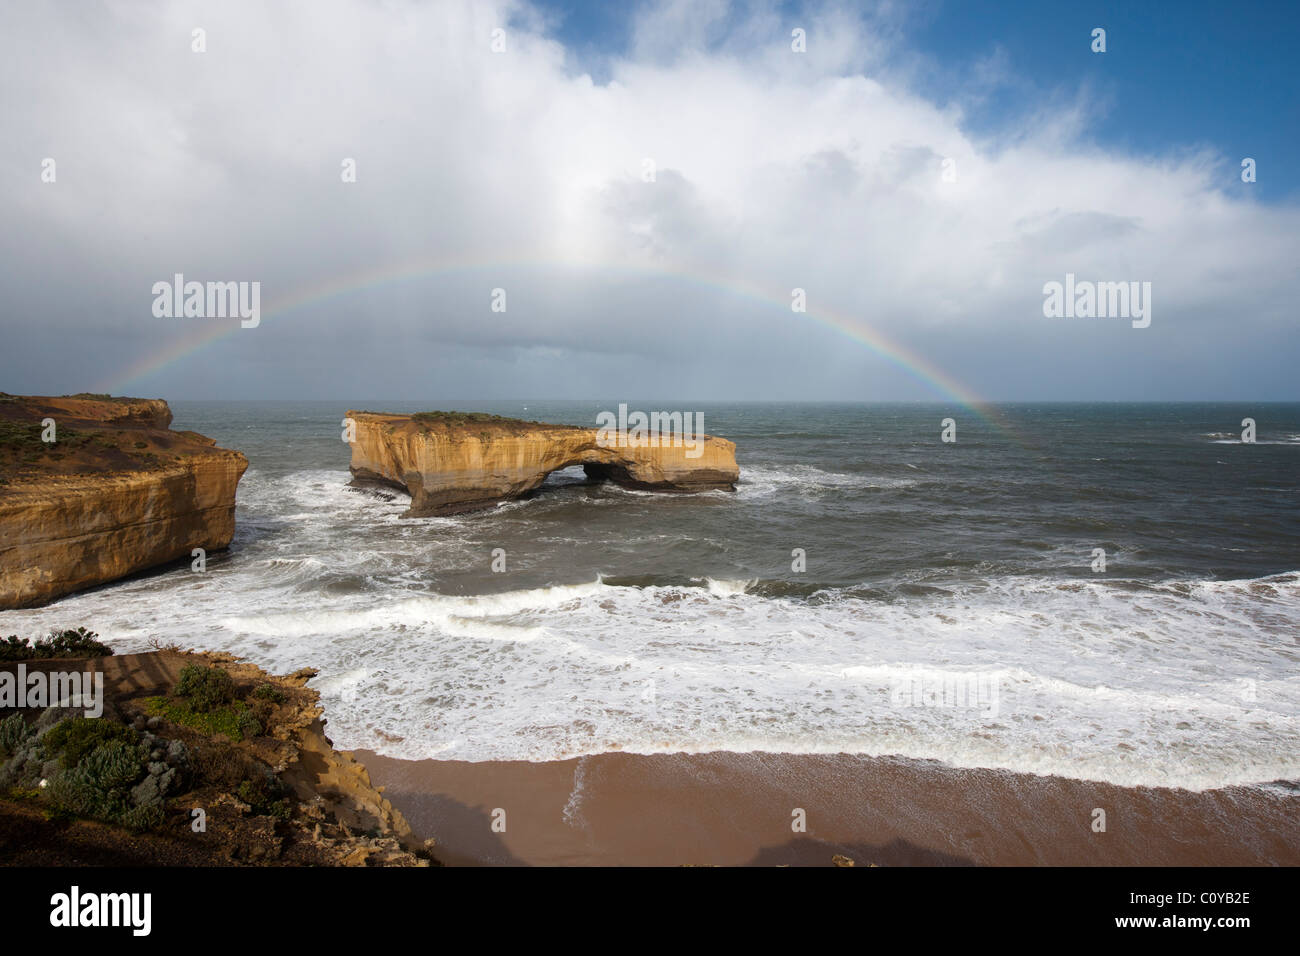 London arch, formerly London bridge before the collapse, surrounded by rainbow. Great Ocean Road, Victoria, Australia - Stock Image